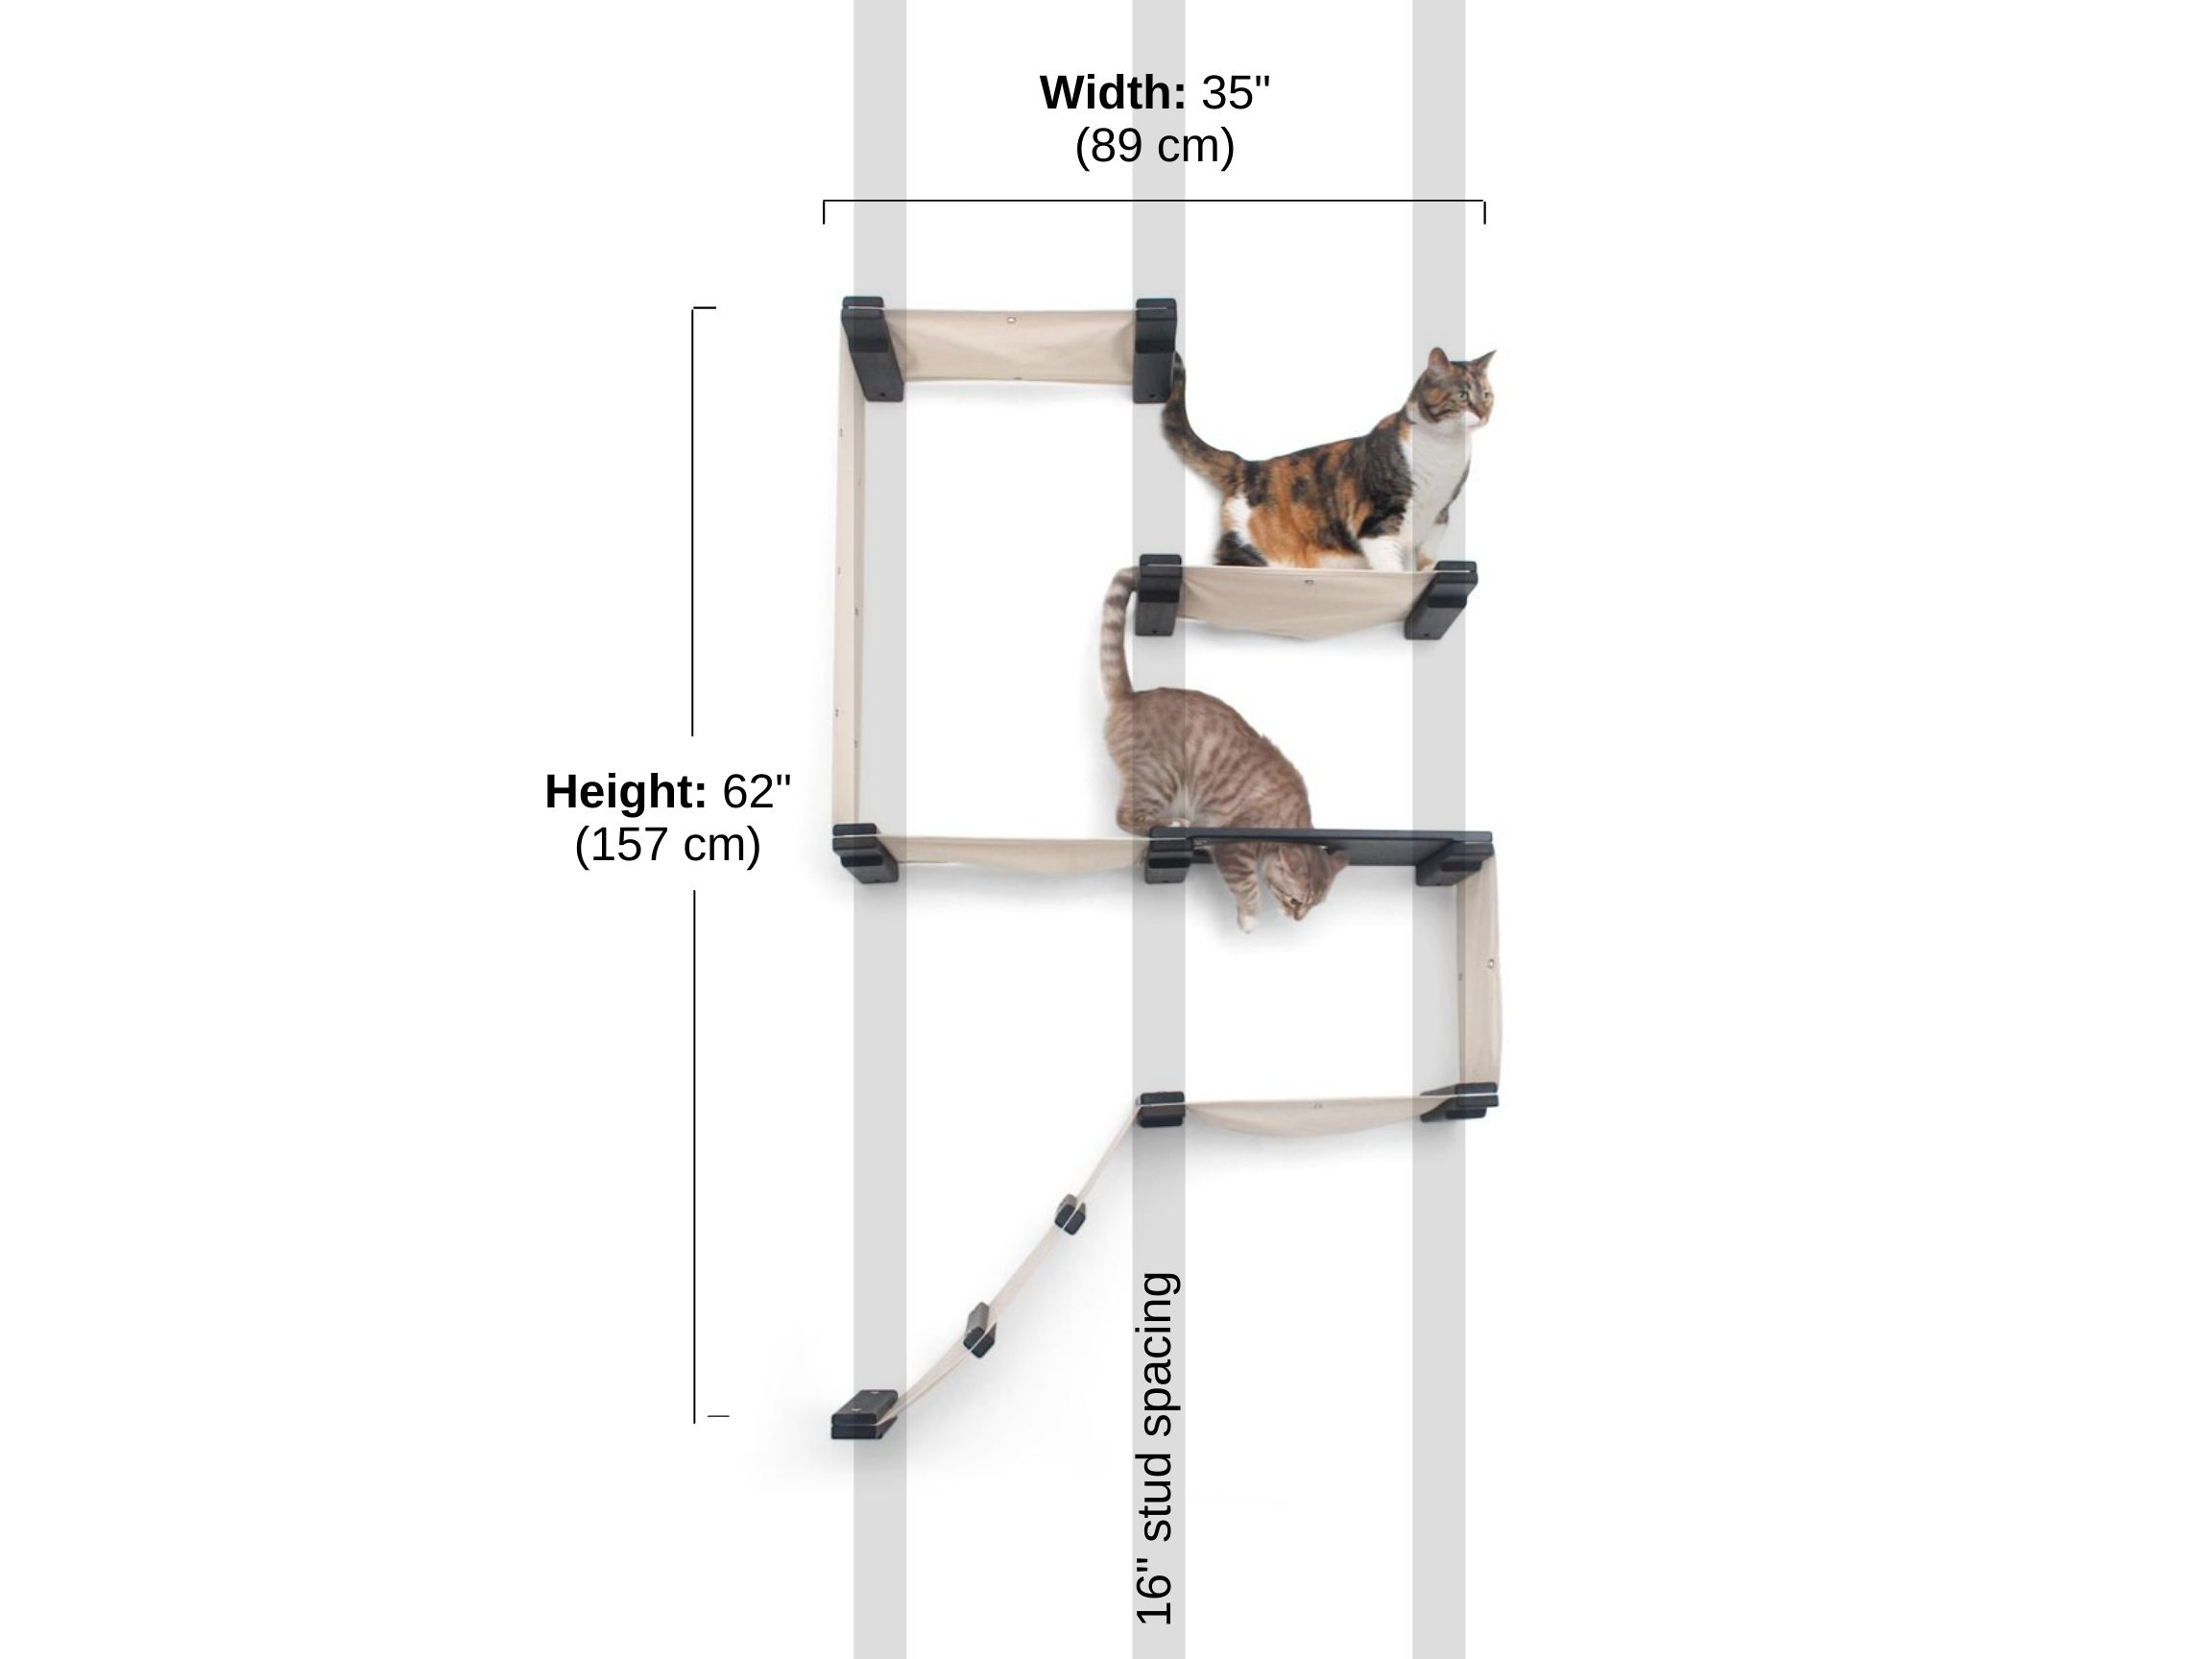 Stud spacing and dimensions of the cat fort